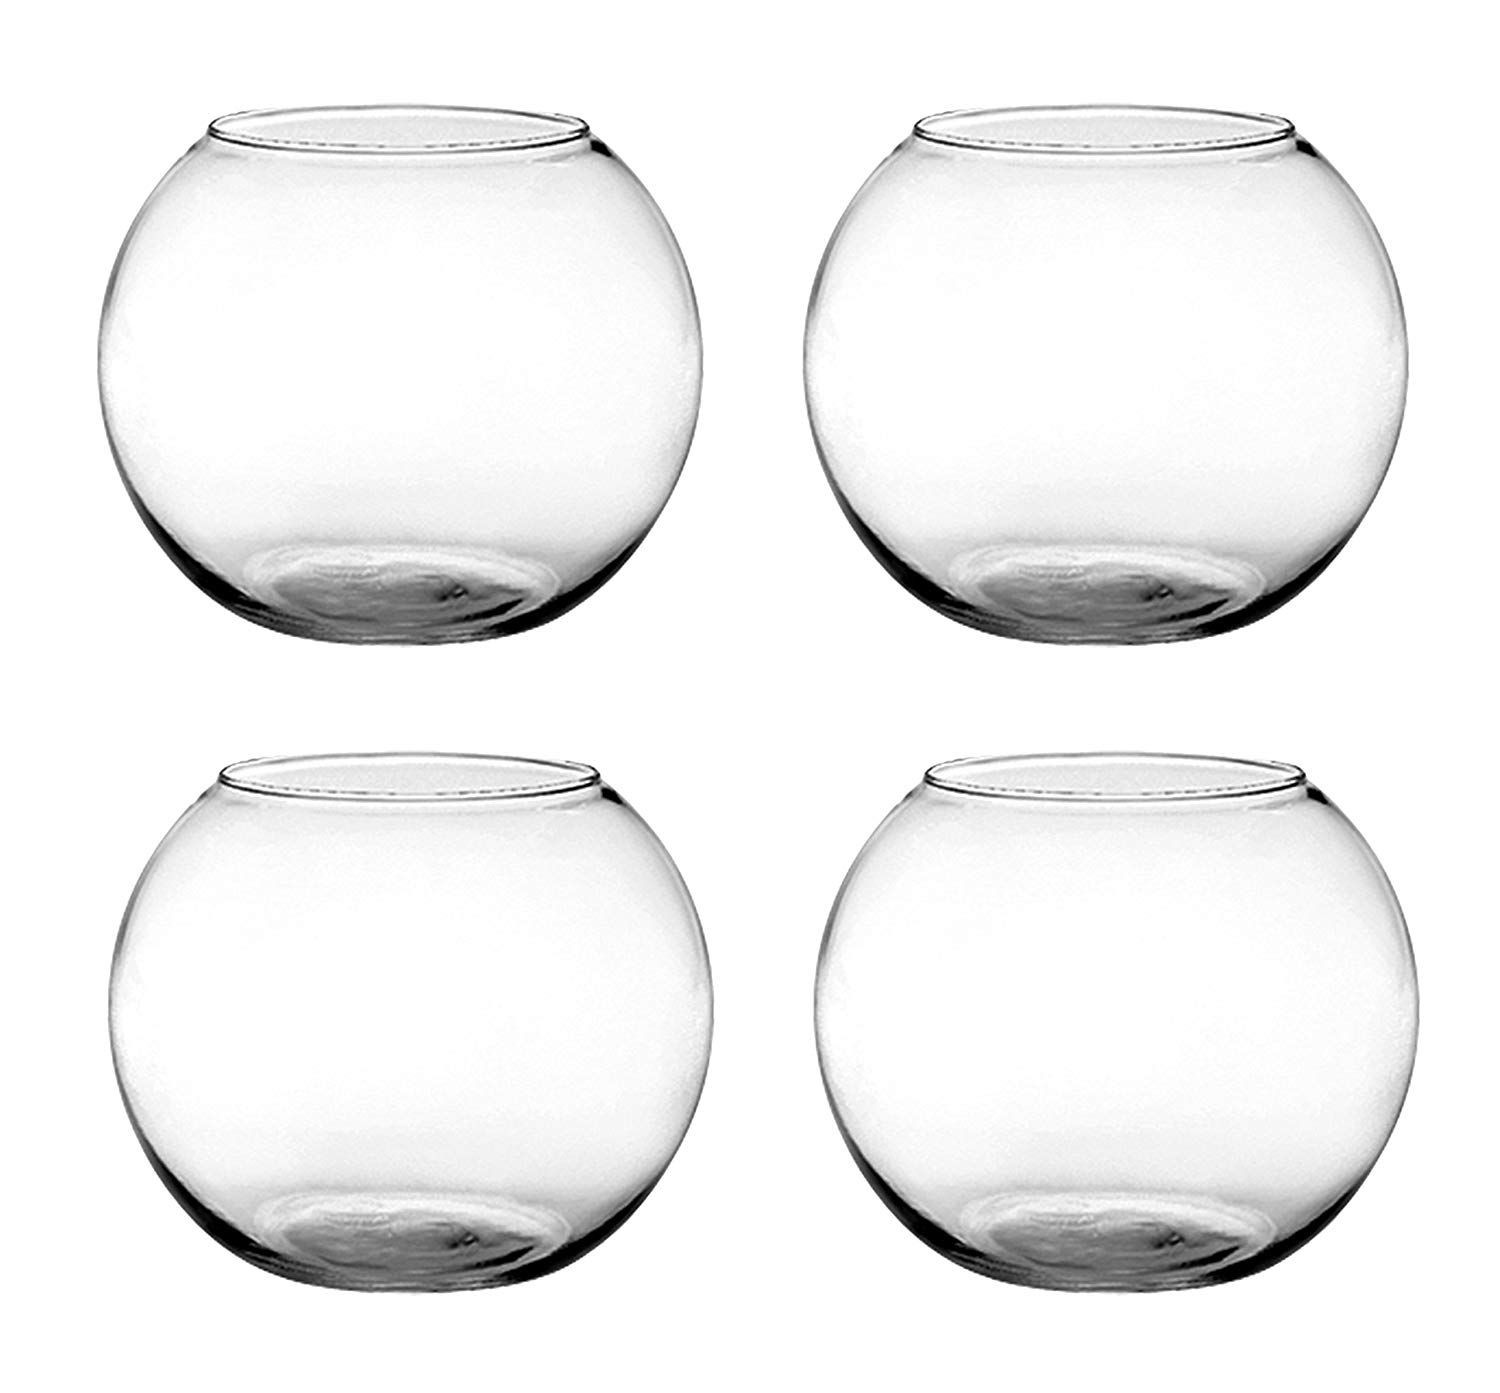 face vases for sale of 32 wide mouth vase the weekly world within amazon syndicate sales 6 rose bowl clear planters garden